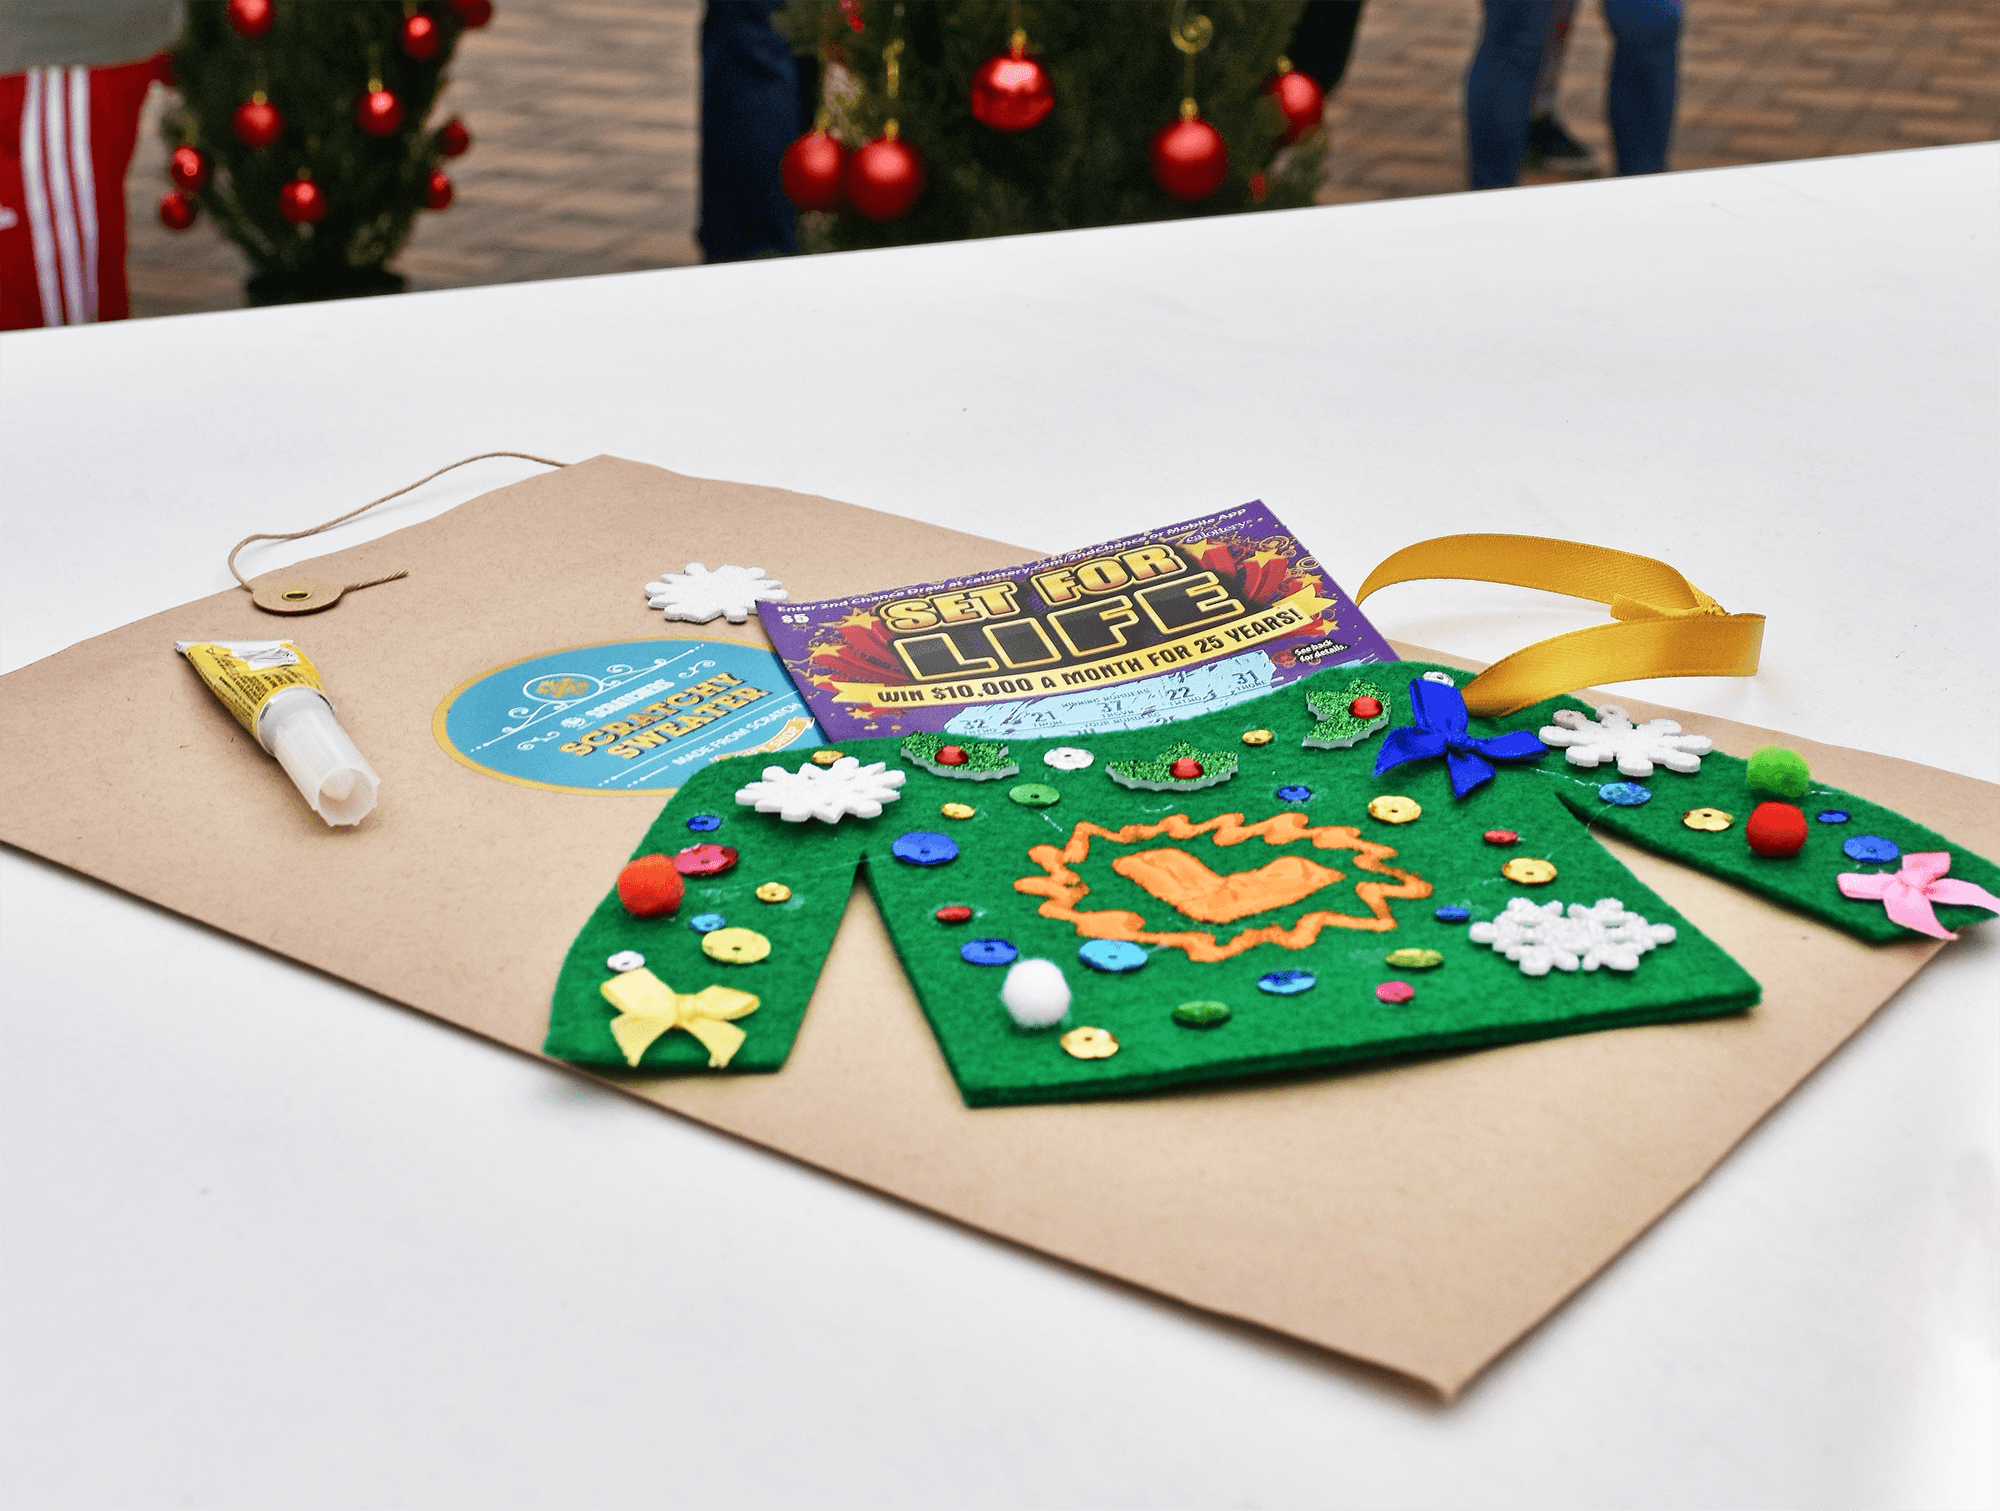 """Each of the 5 kits was designed to enhance the joy of Scratchers<sup>®</sup>. For example, a """"Scratchy Holiday Sweater"""" that you could bedazzle with the accompanying decorations also became a snug holder for the Scratchers ticket itself."""